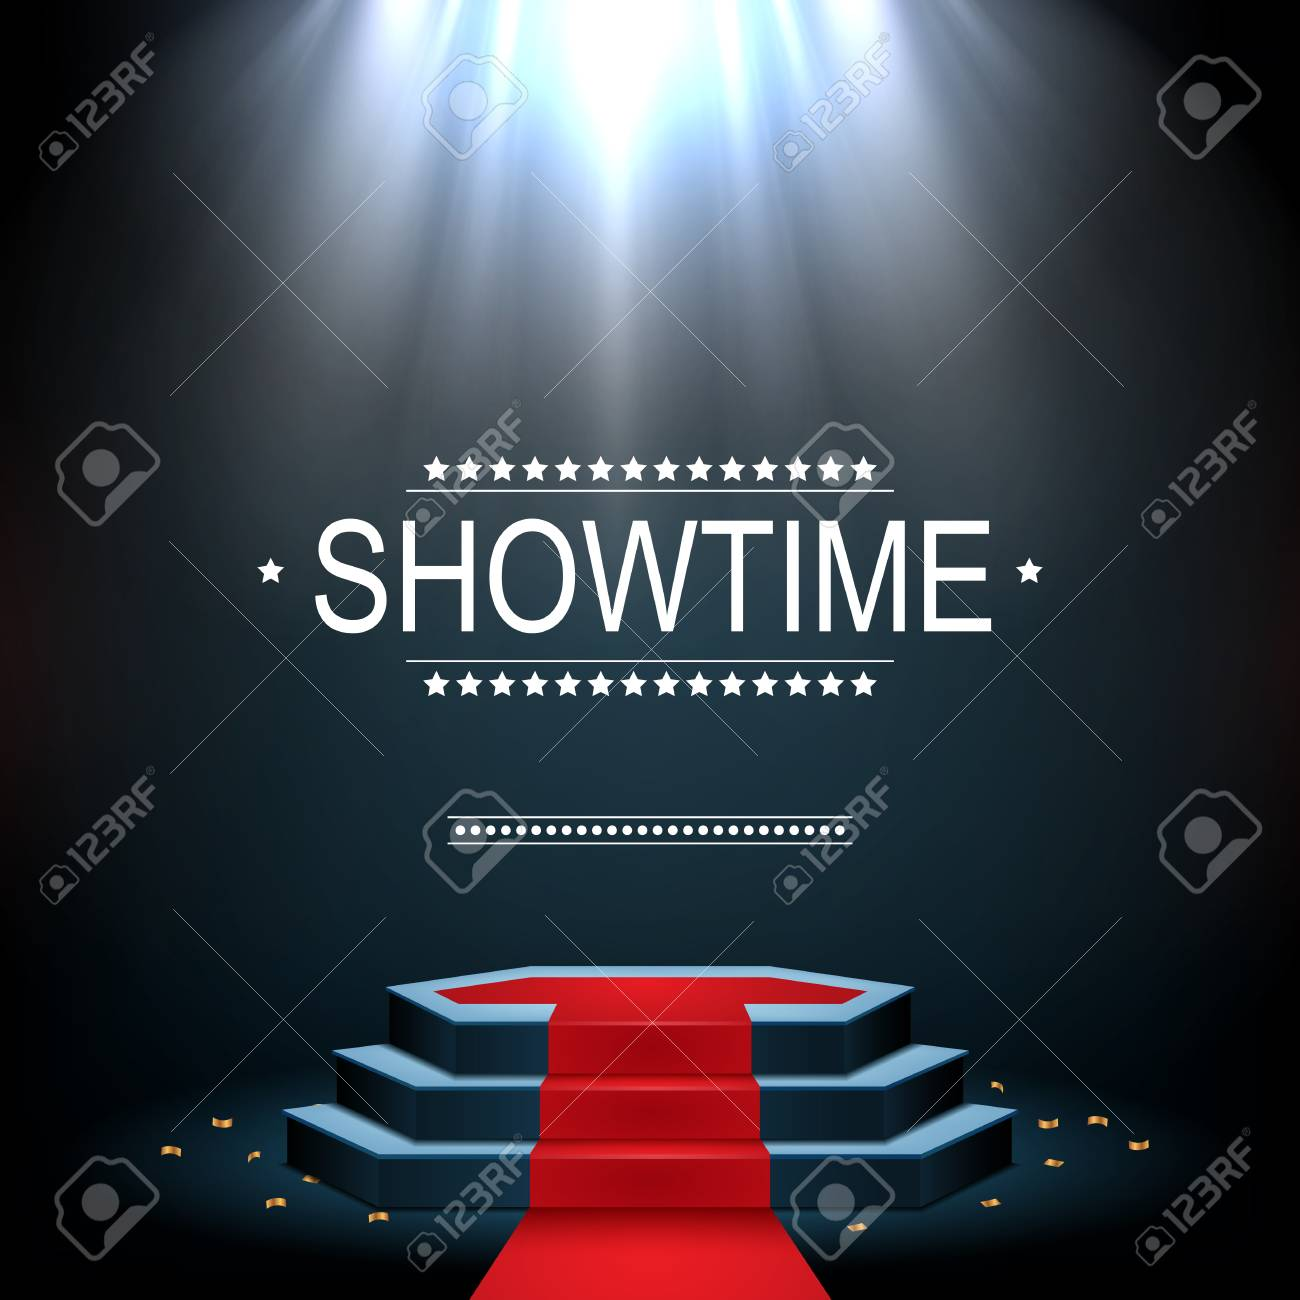 Vector illustration of Showtime banner with podium and red carpet illuminated by spotlights - 99097322